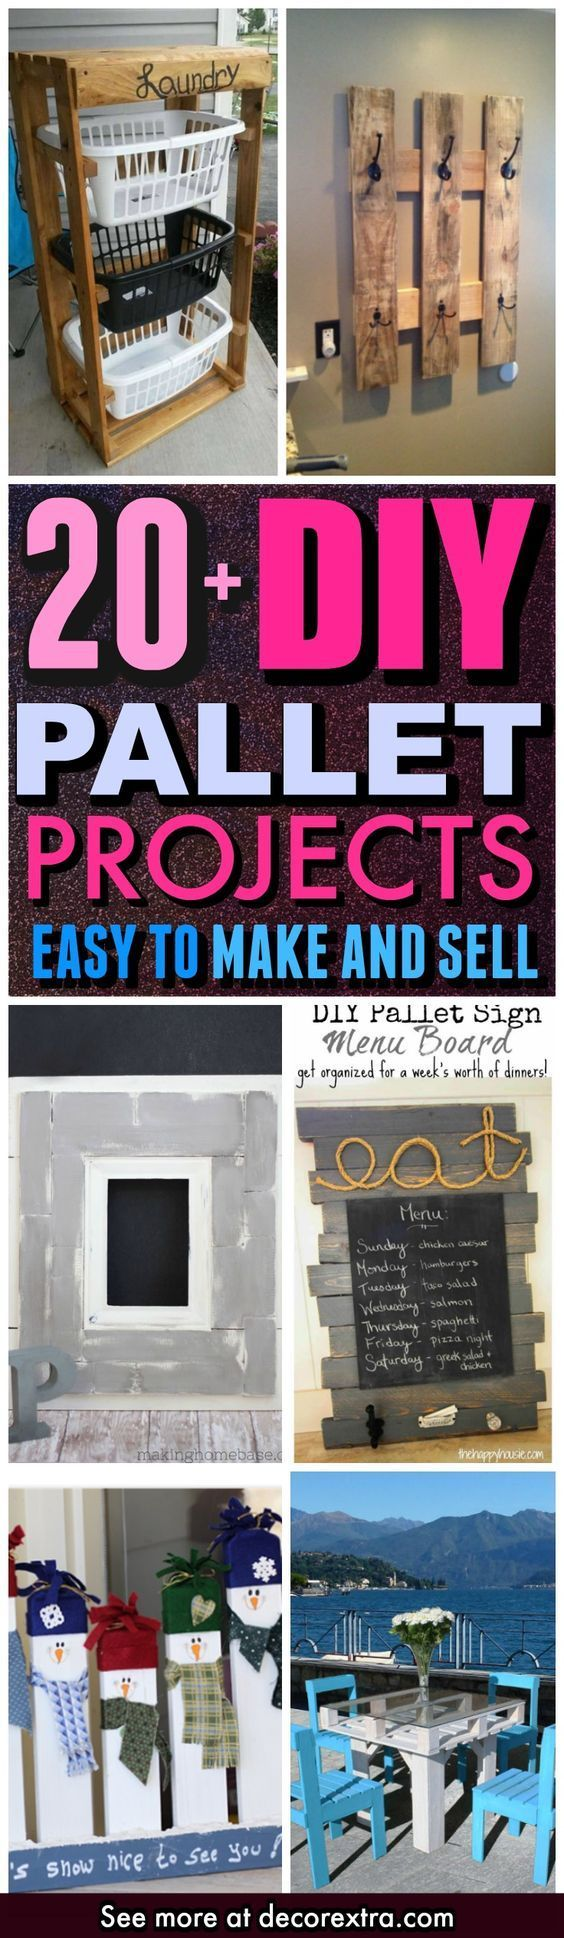 20+ DIY Pallet Projects That Are Easy to Make and Sell #craftstomakeandsell